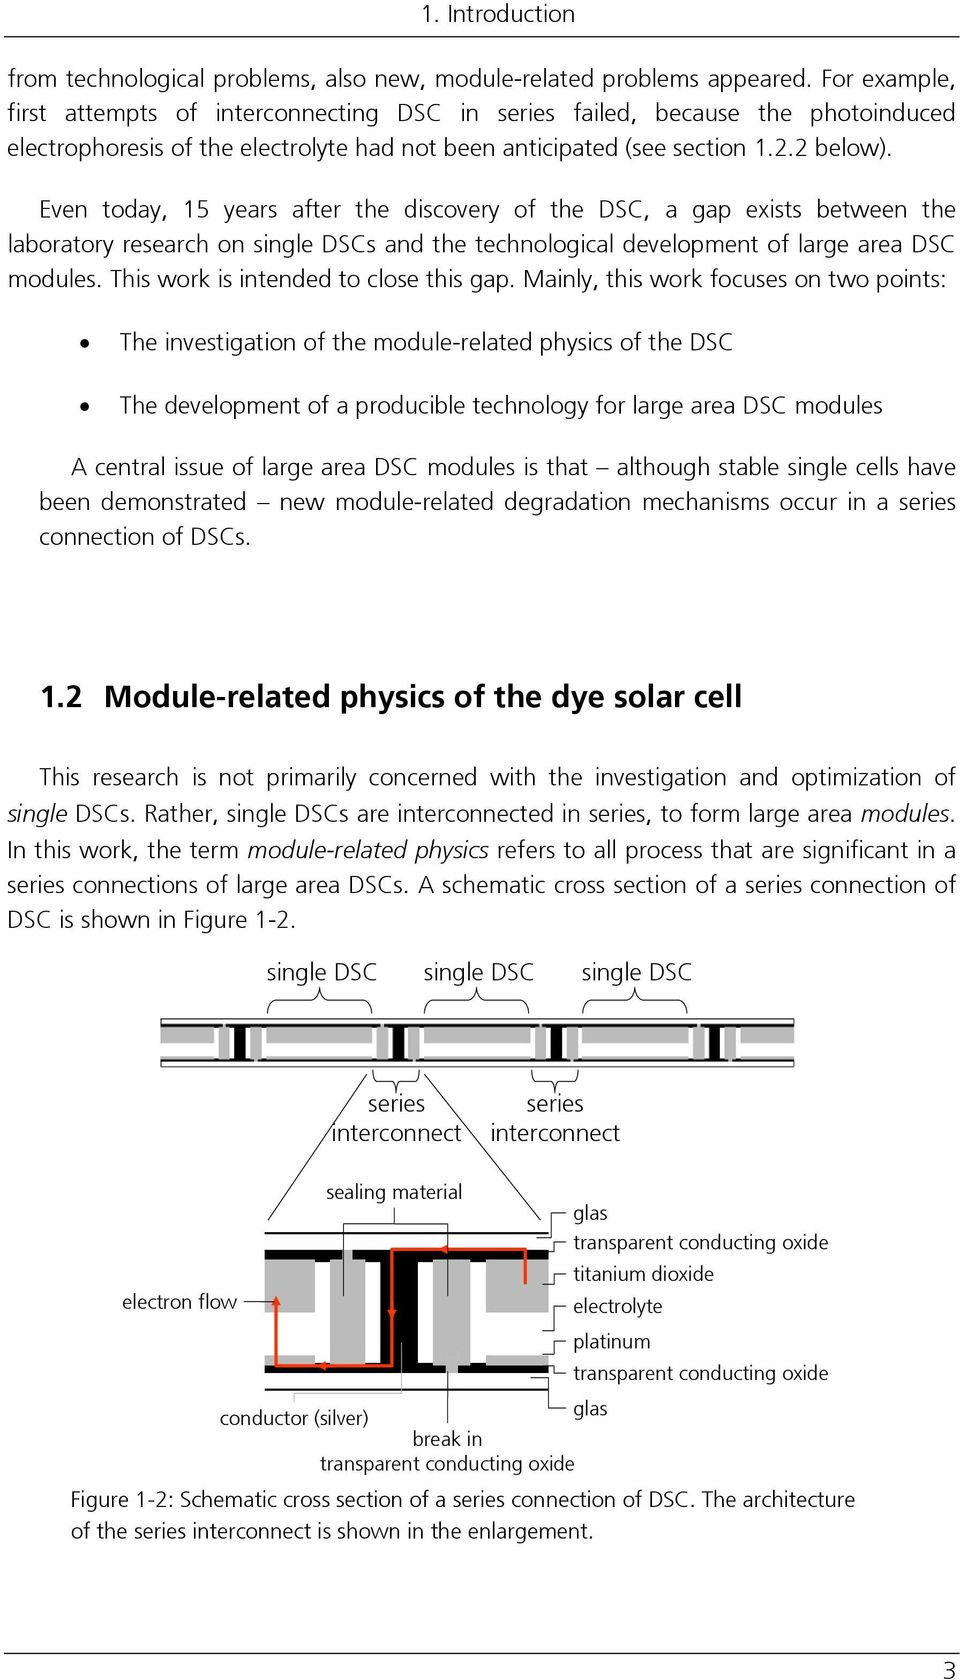 Even today, 15 years after the discovery of the DSC, a gap exists between the laboratory research on single DSCs and the technological development of large area DSC modules.